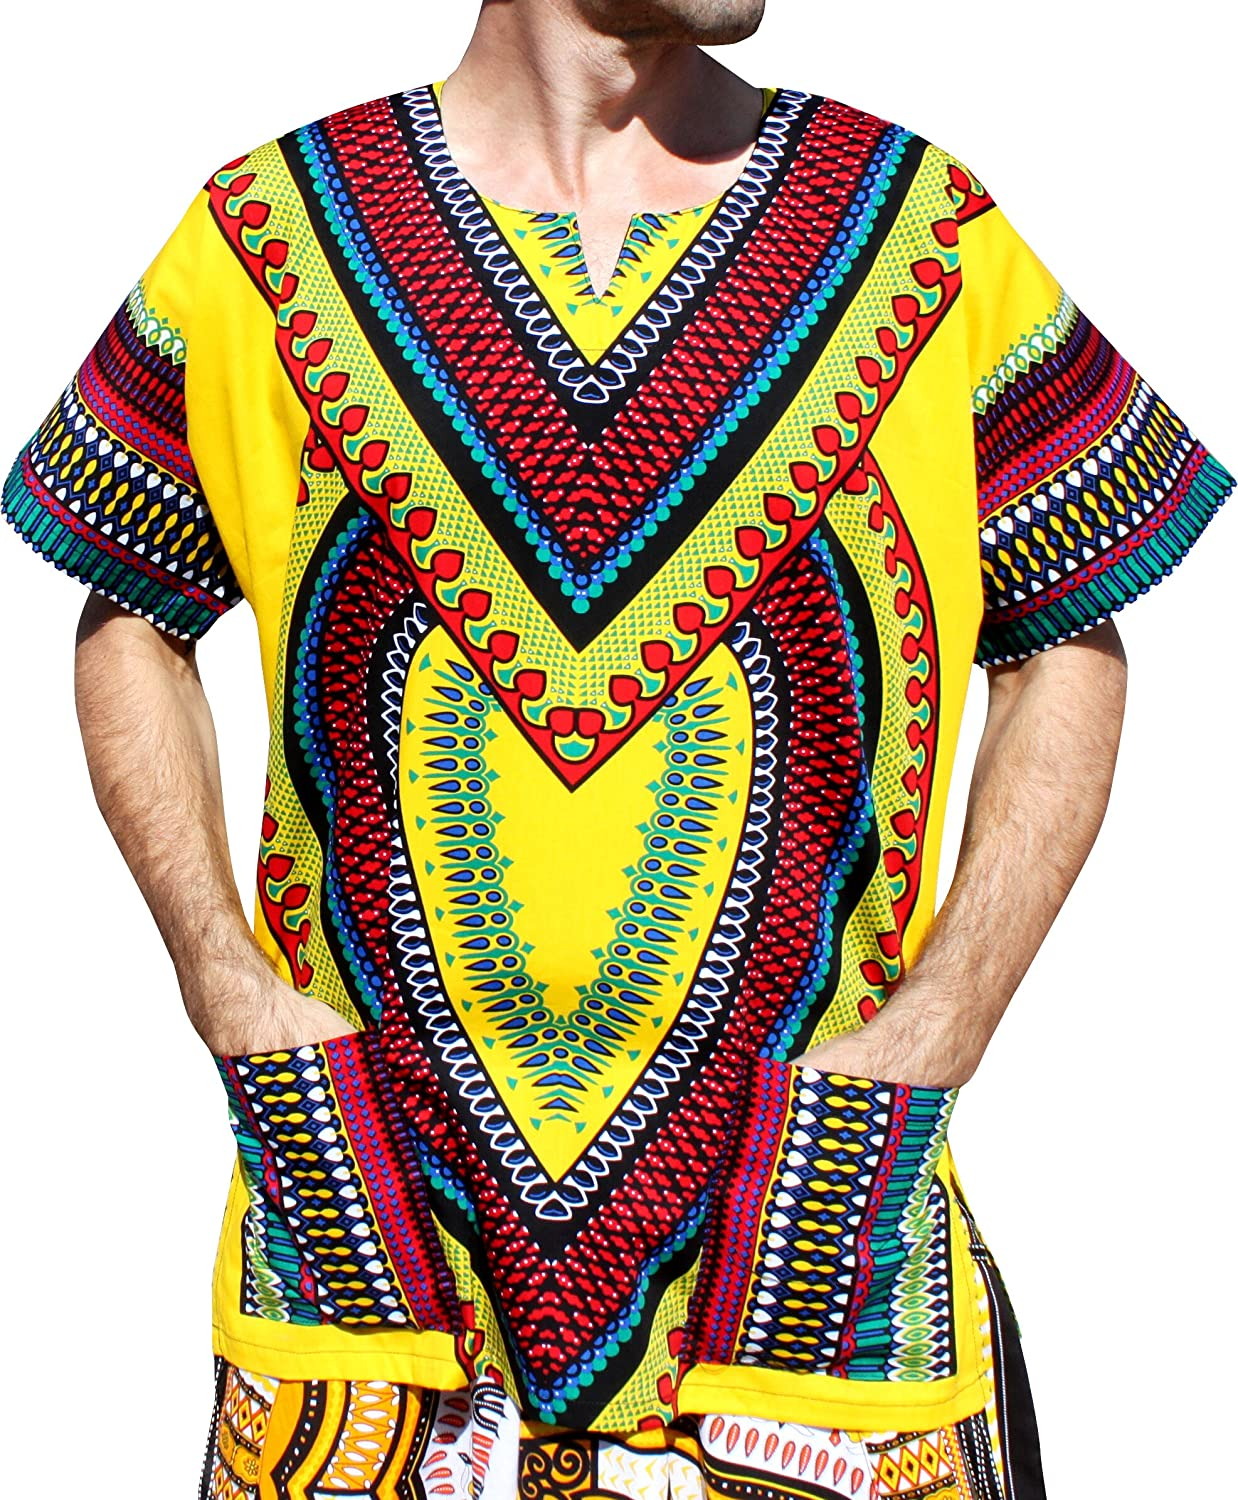 99a480f39ce 100% Cotton RaanPahMuang quality hand made Fair Trade Thai clothing brand.  Bright bold African Dashiki print. Large open collar